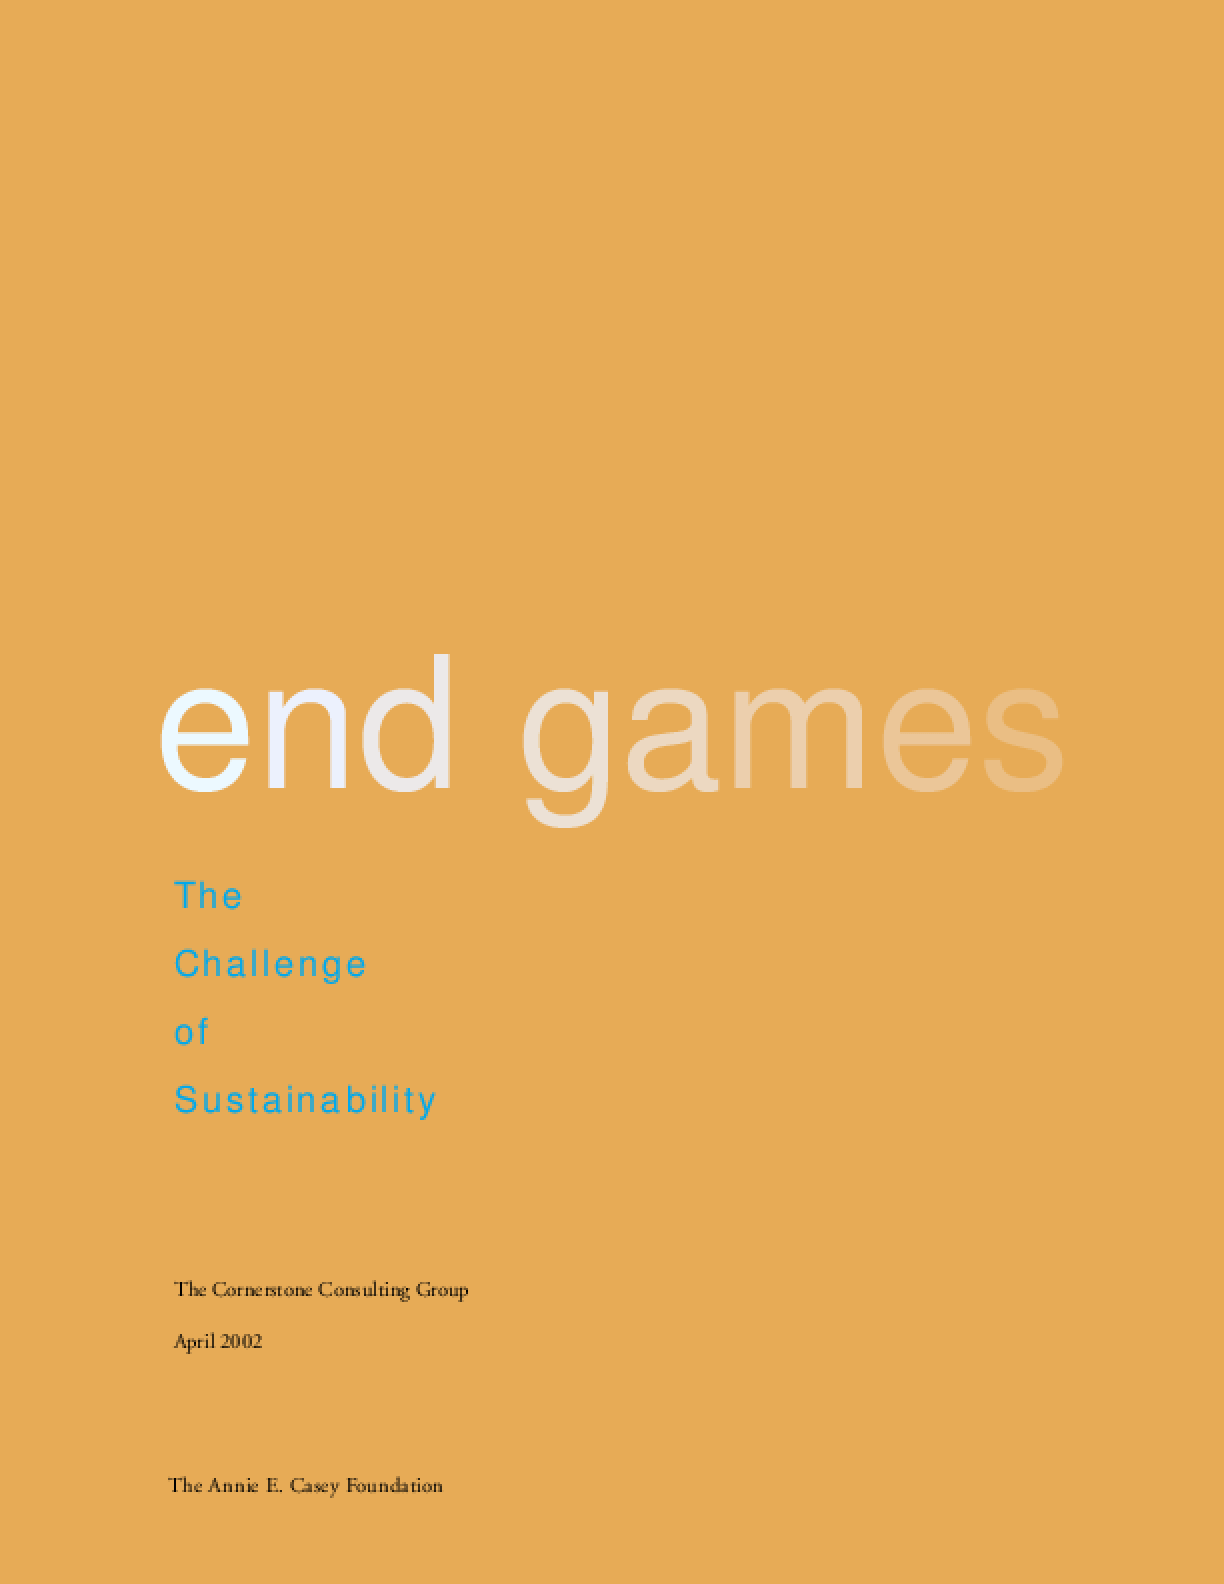 End Games: The Challenge of Sustainability